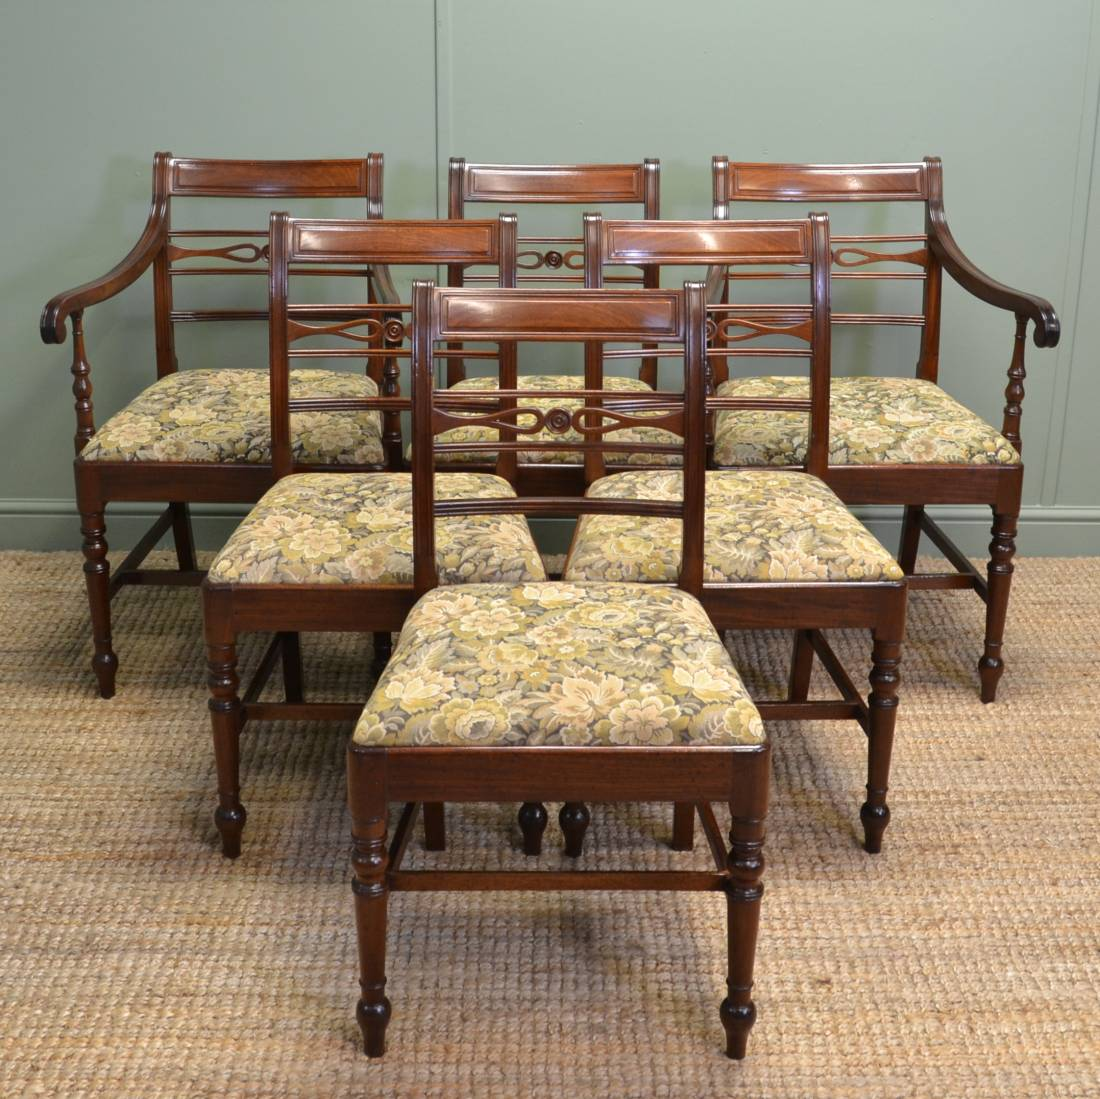 Antique Mahogany Dining Room Furniture: Set Of Six Regency Mahogany Antique Dining Chairs